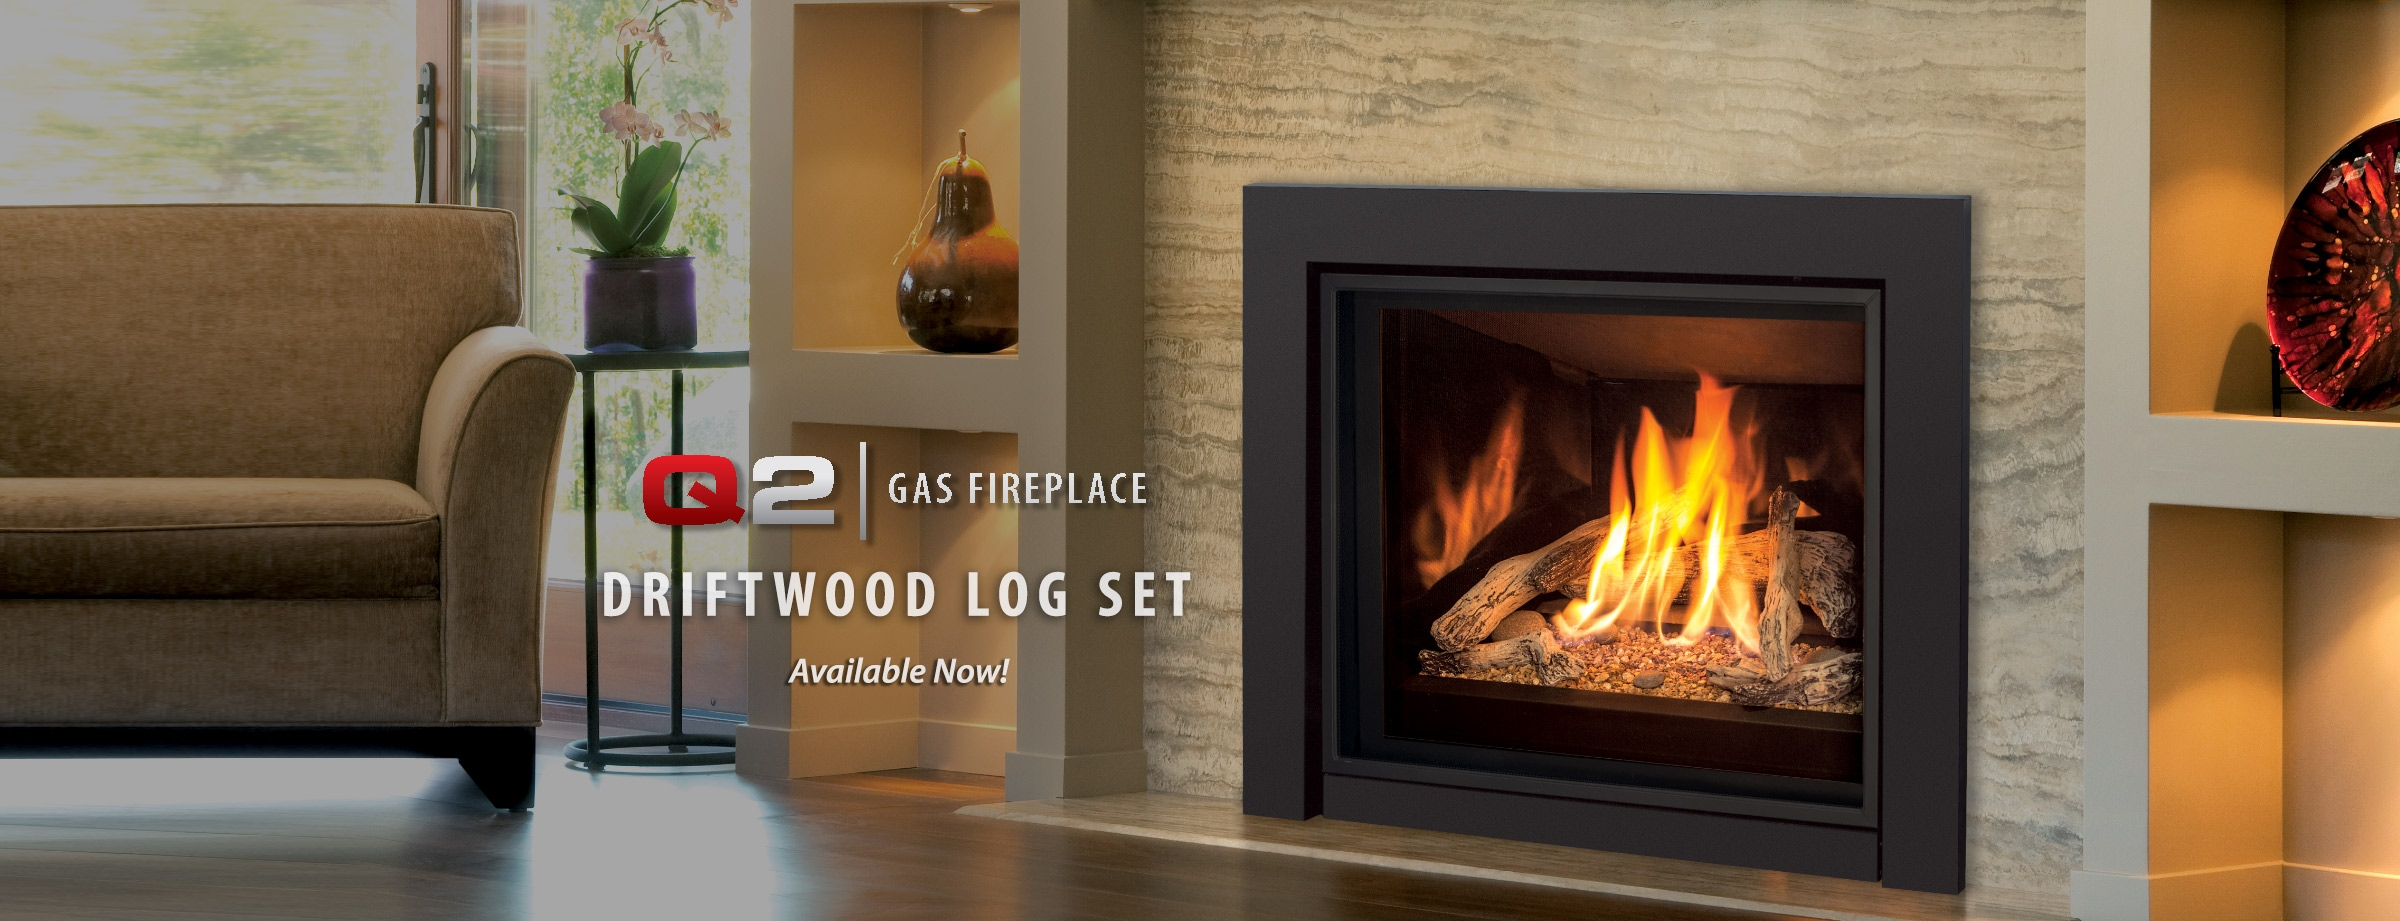 gas fired fireplaces. WOOD PRODUCTS  GAS Enviro Home